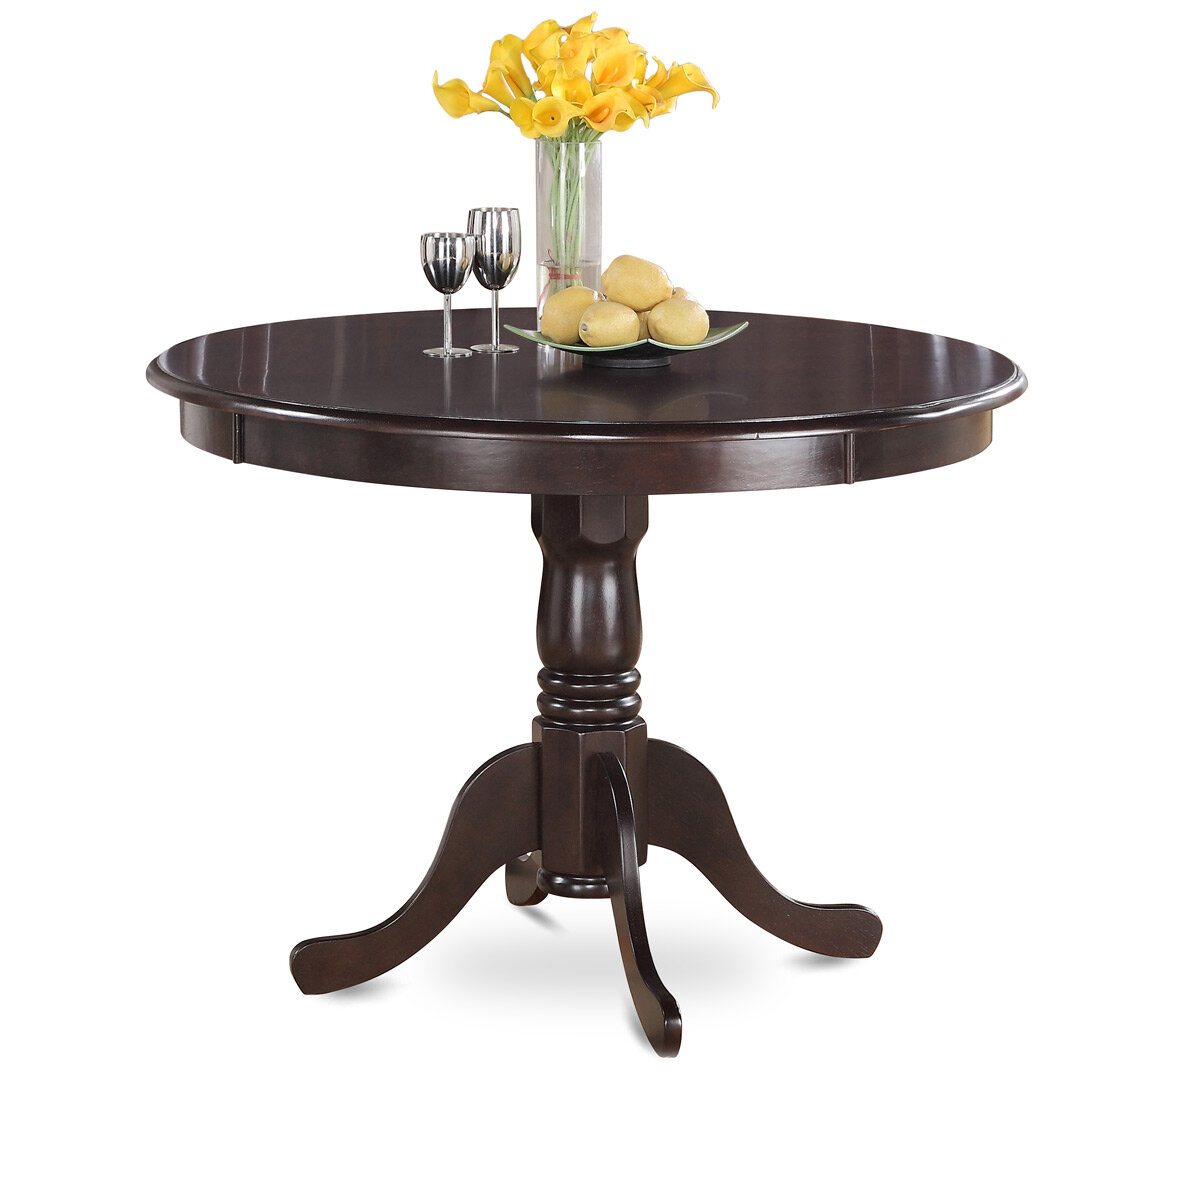 Darby Home Co Bonenfant Dining Table